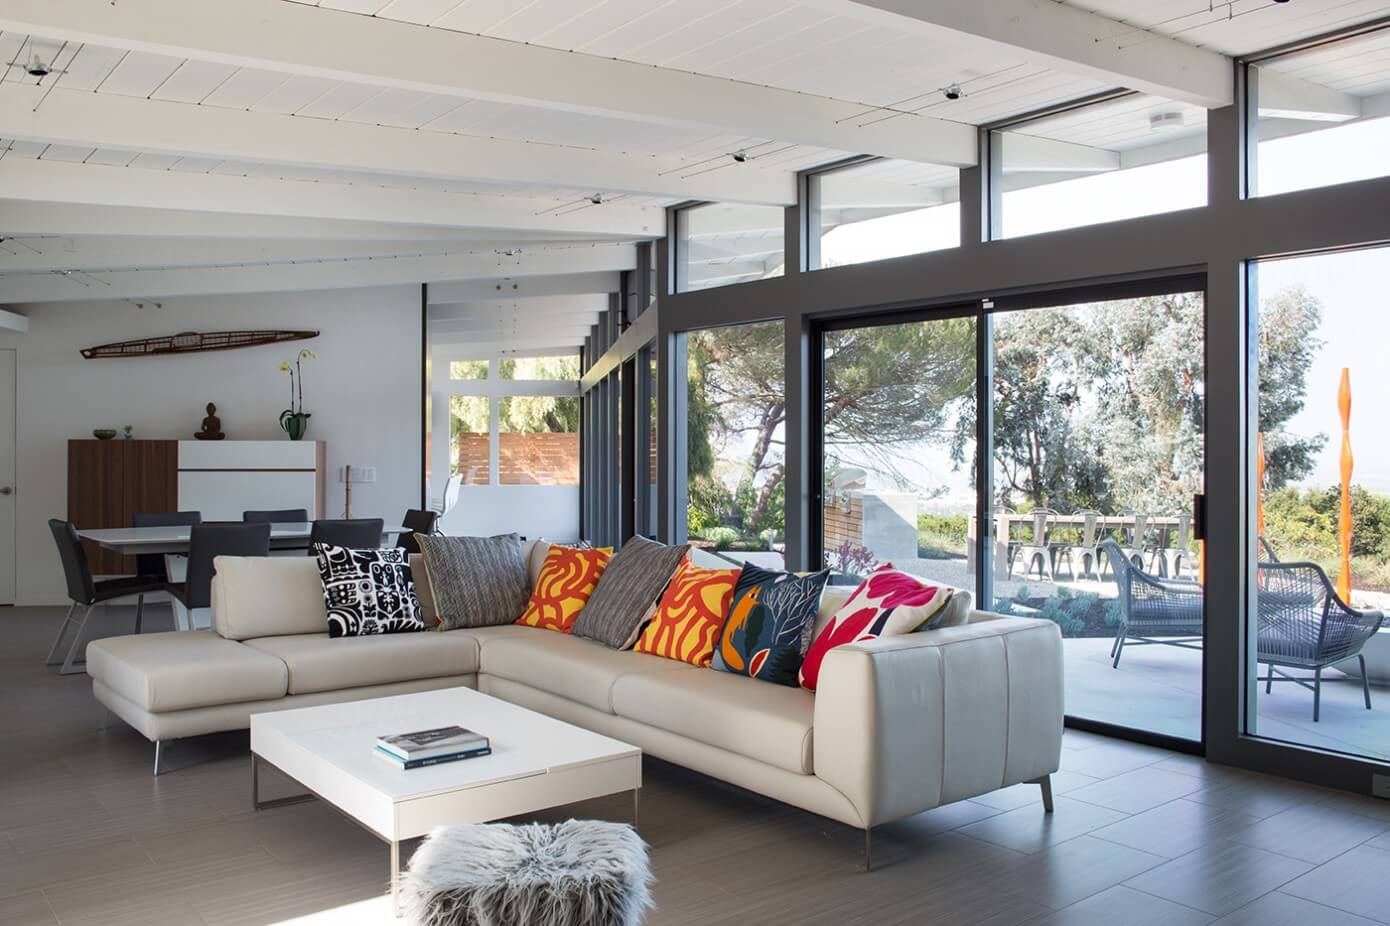 Mid entury Modern House by Klopf rchitecture Homedore - ^